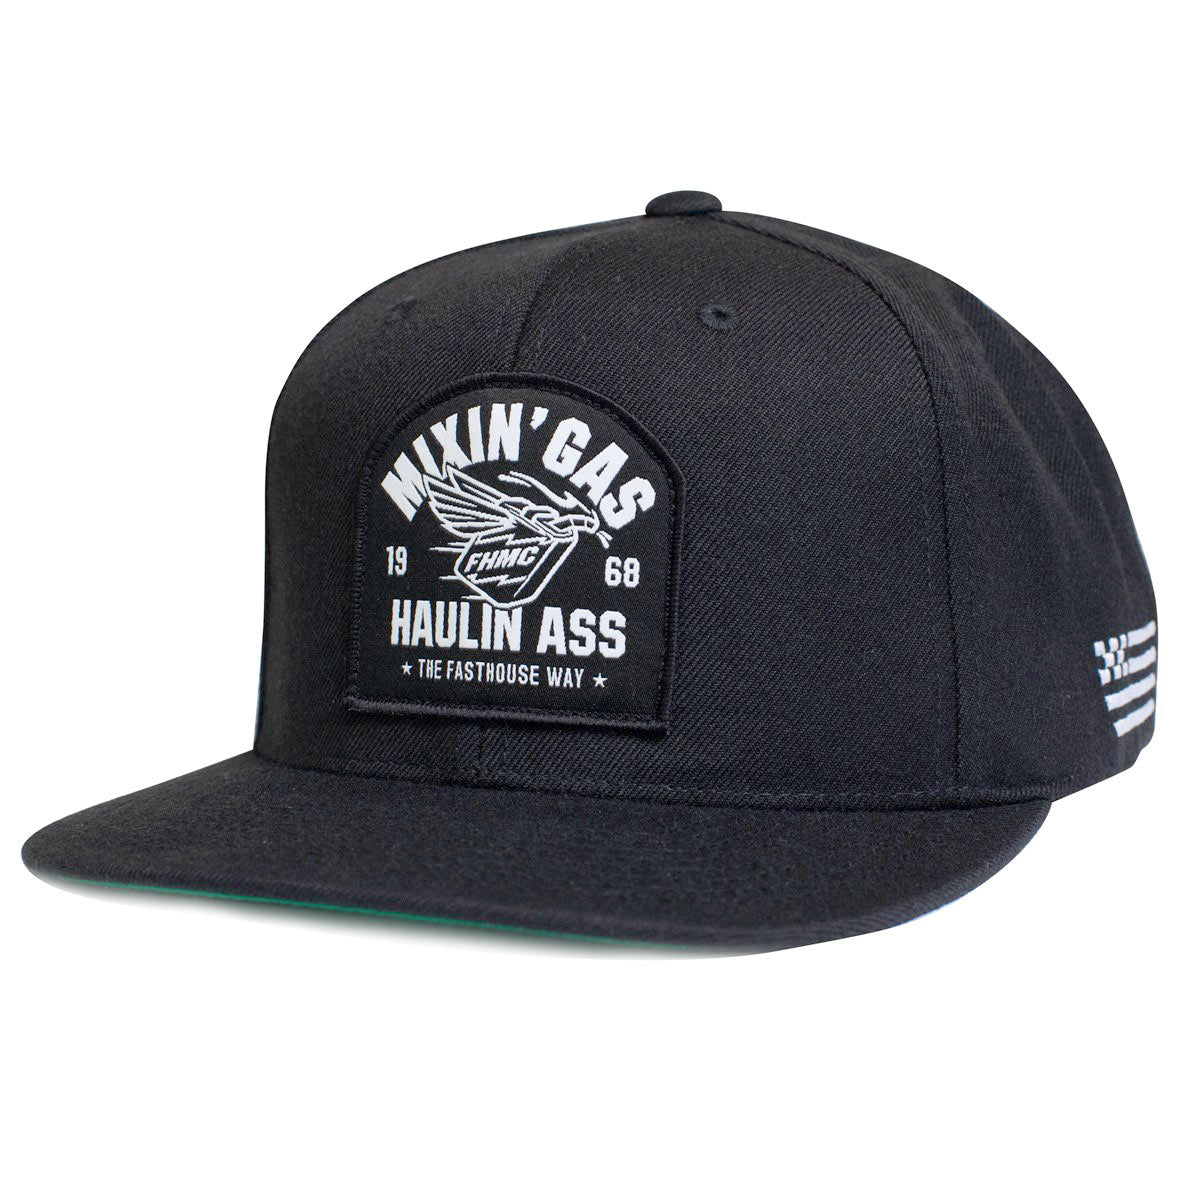 Still Smoking '20 Hat - Black